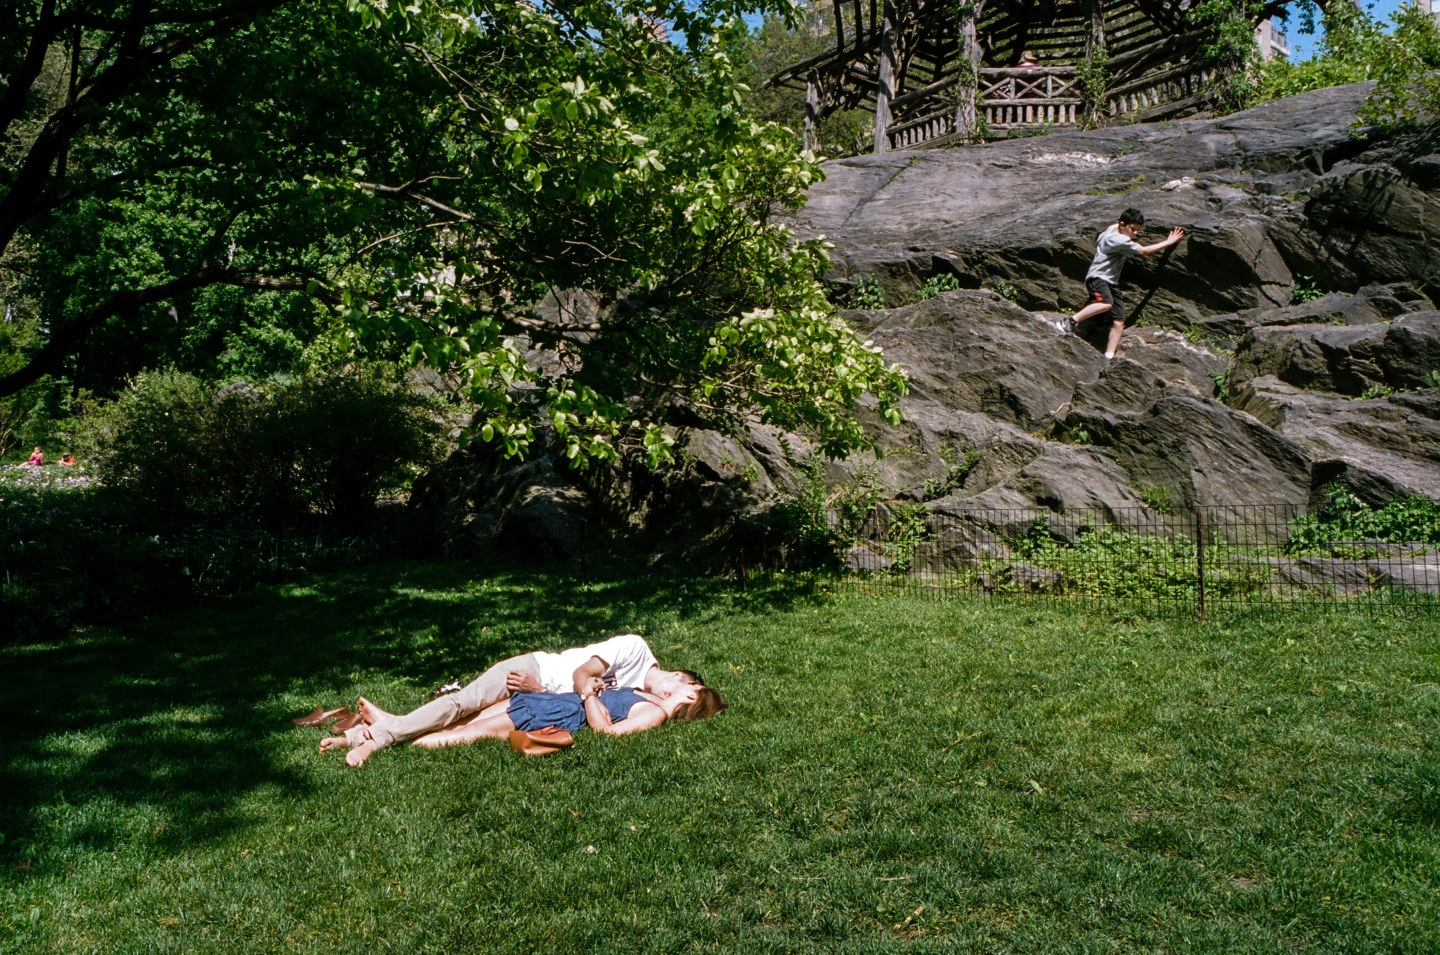 A Lurk At Summer In New York City's Parks